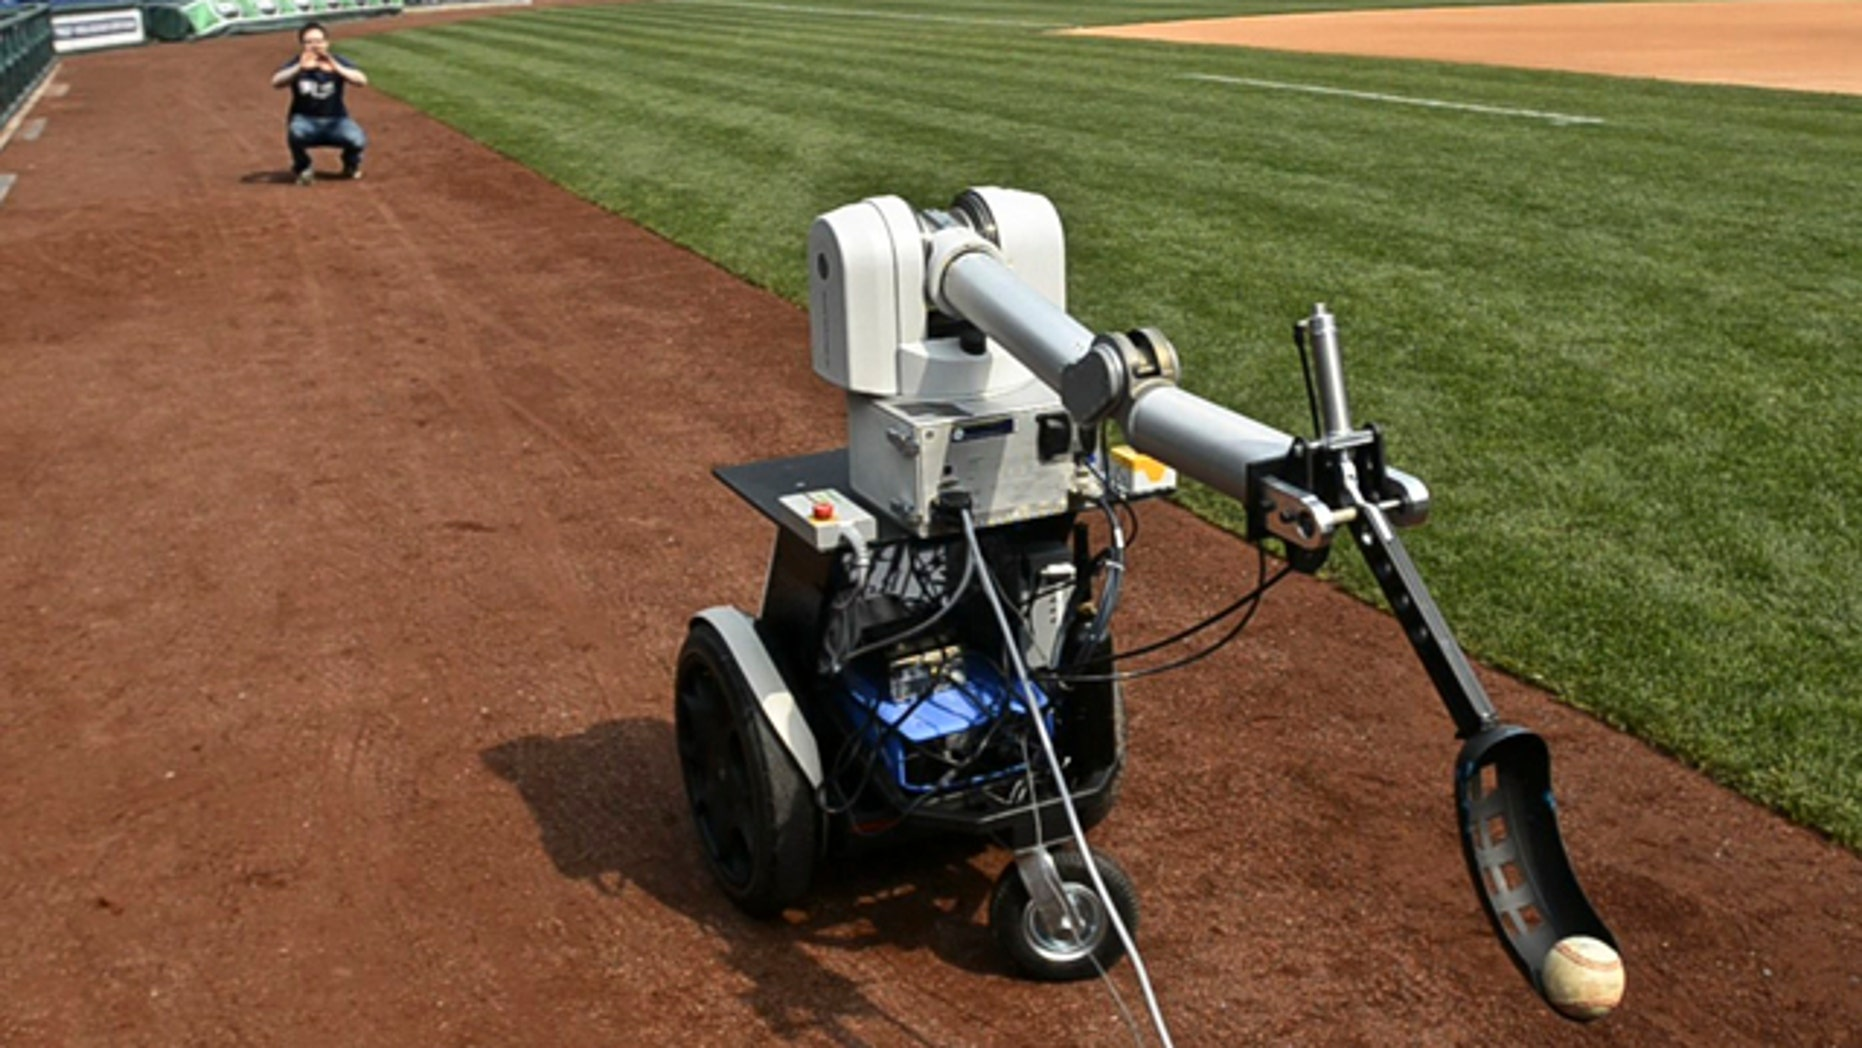 Jamie Gewirtz waits for a robot to throw him a ball at Citizens Bank Park in Philadelphia, Monday April 18, 2011.